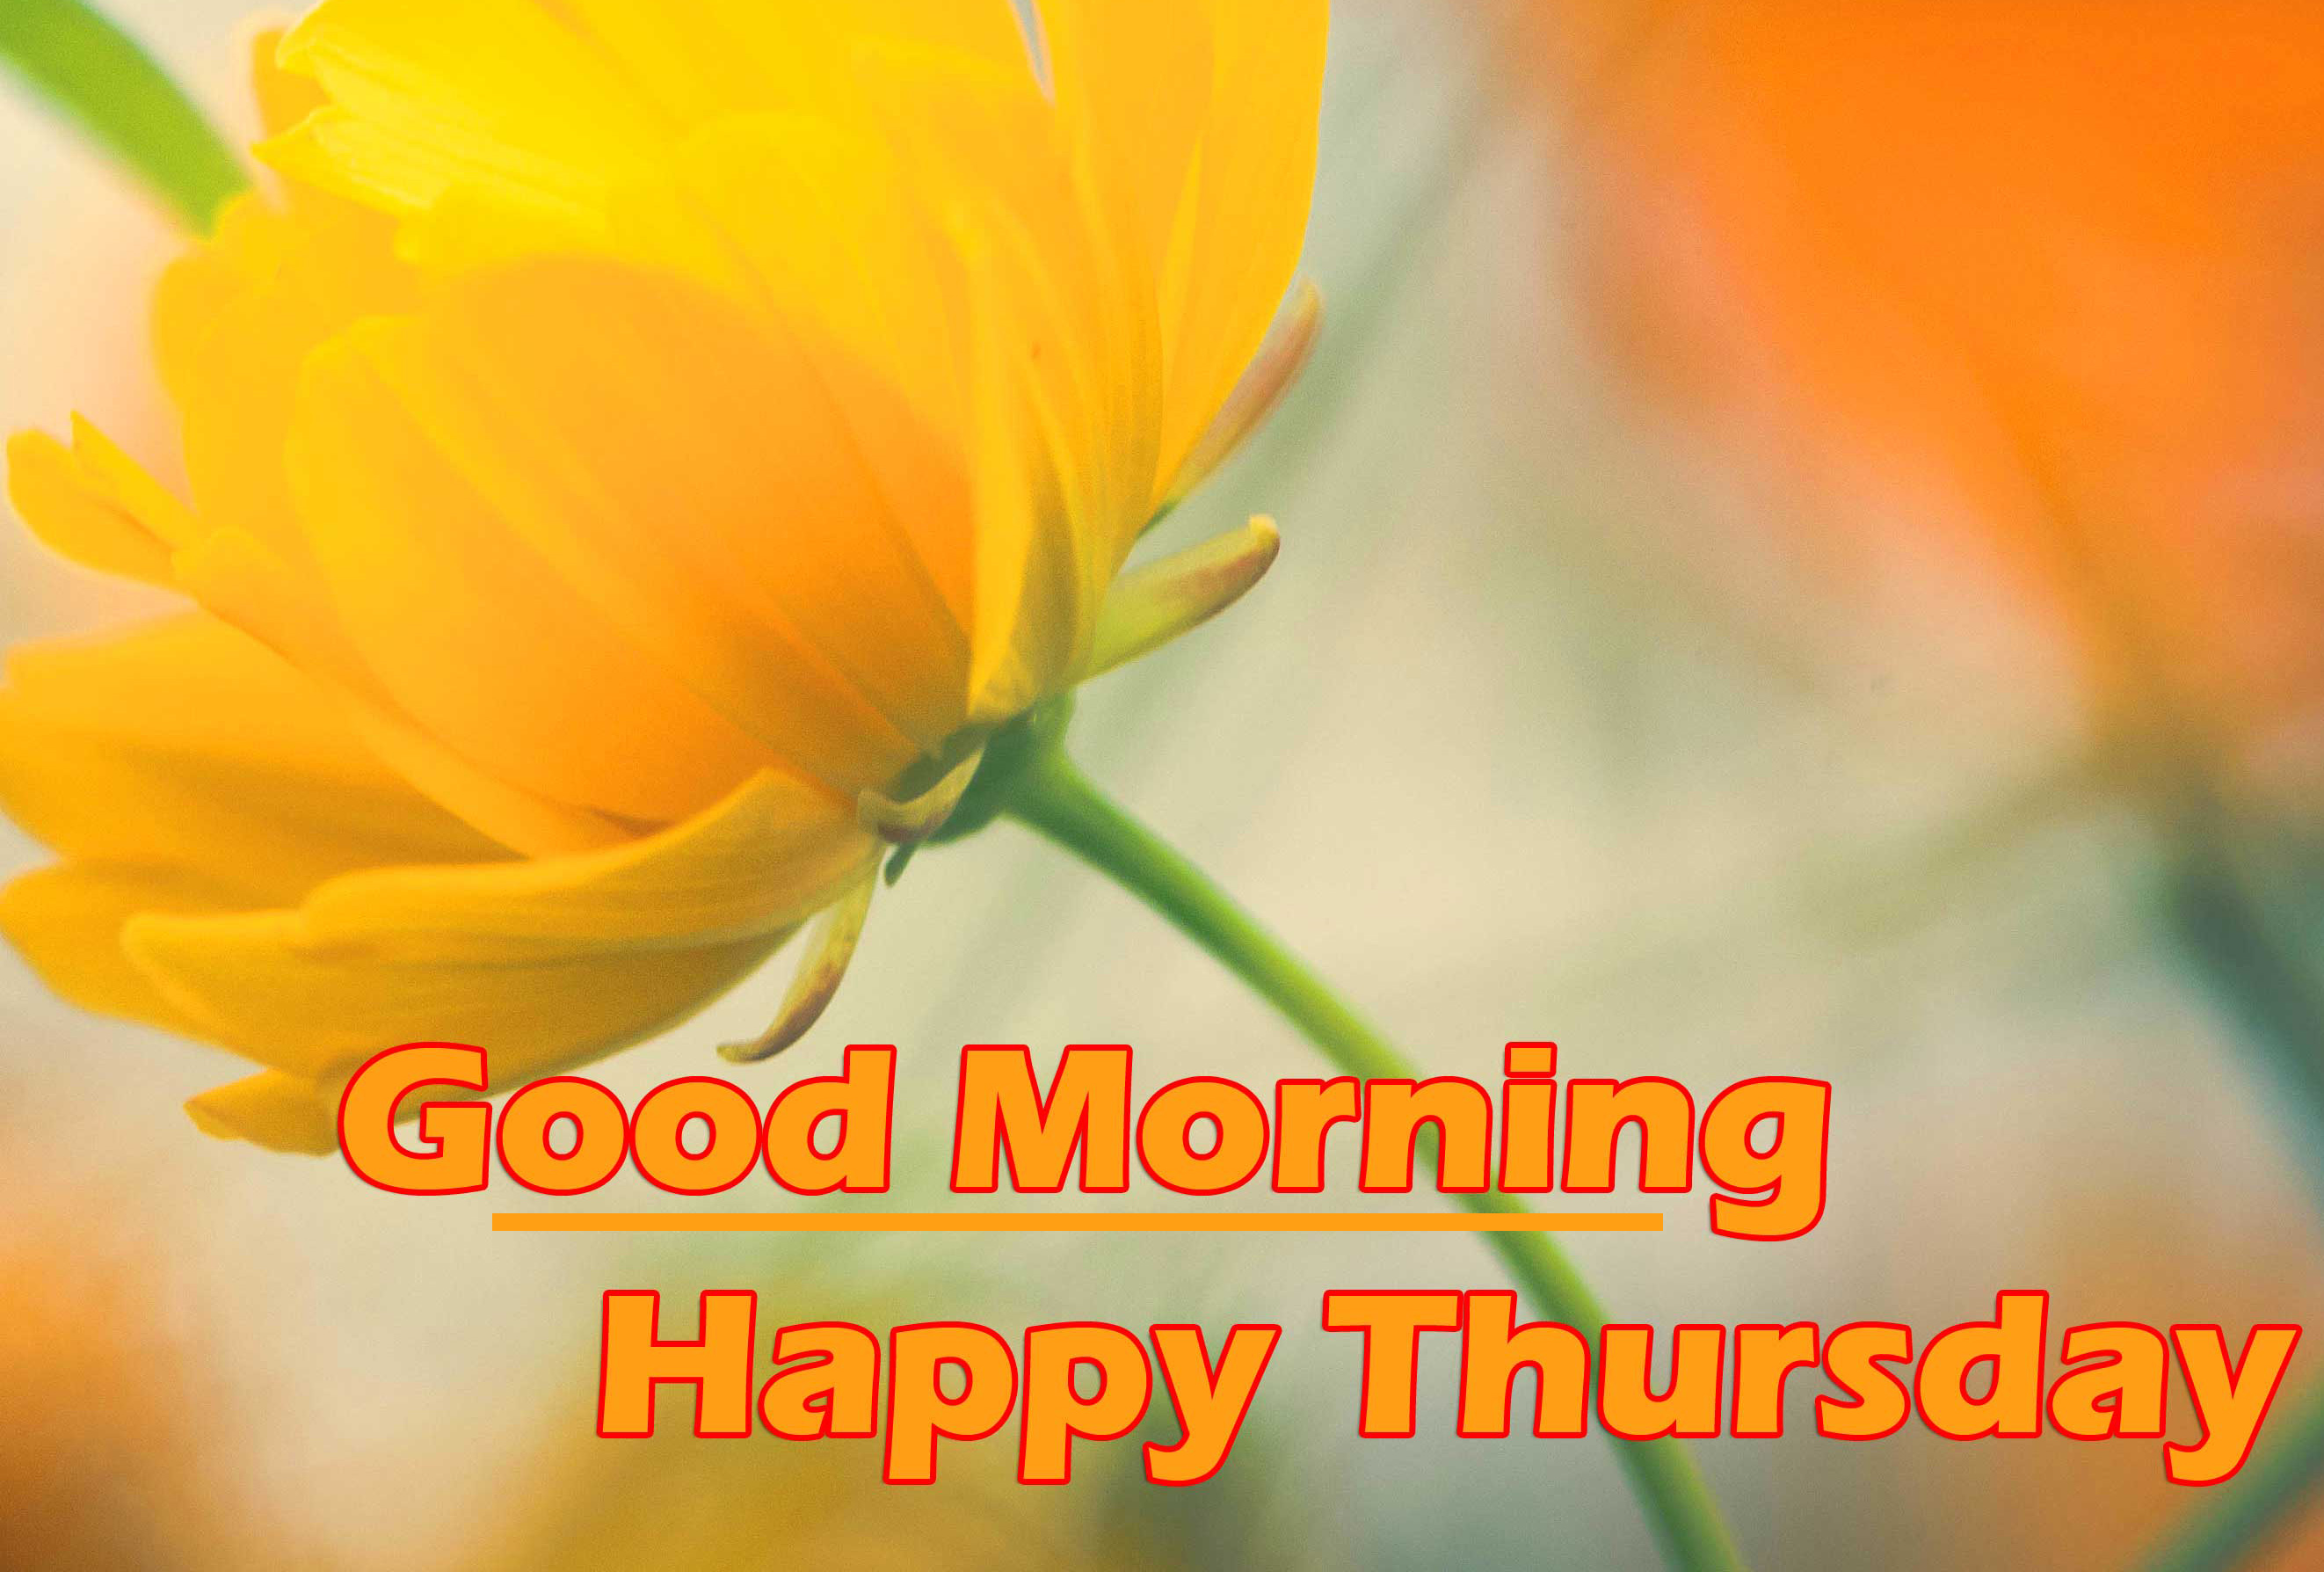 Good Morning Thursday Images Photo Free Download